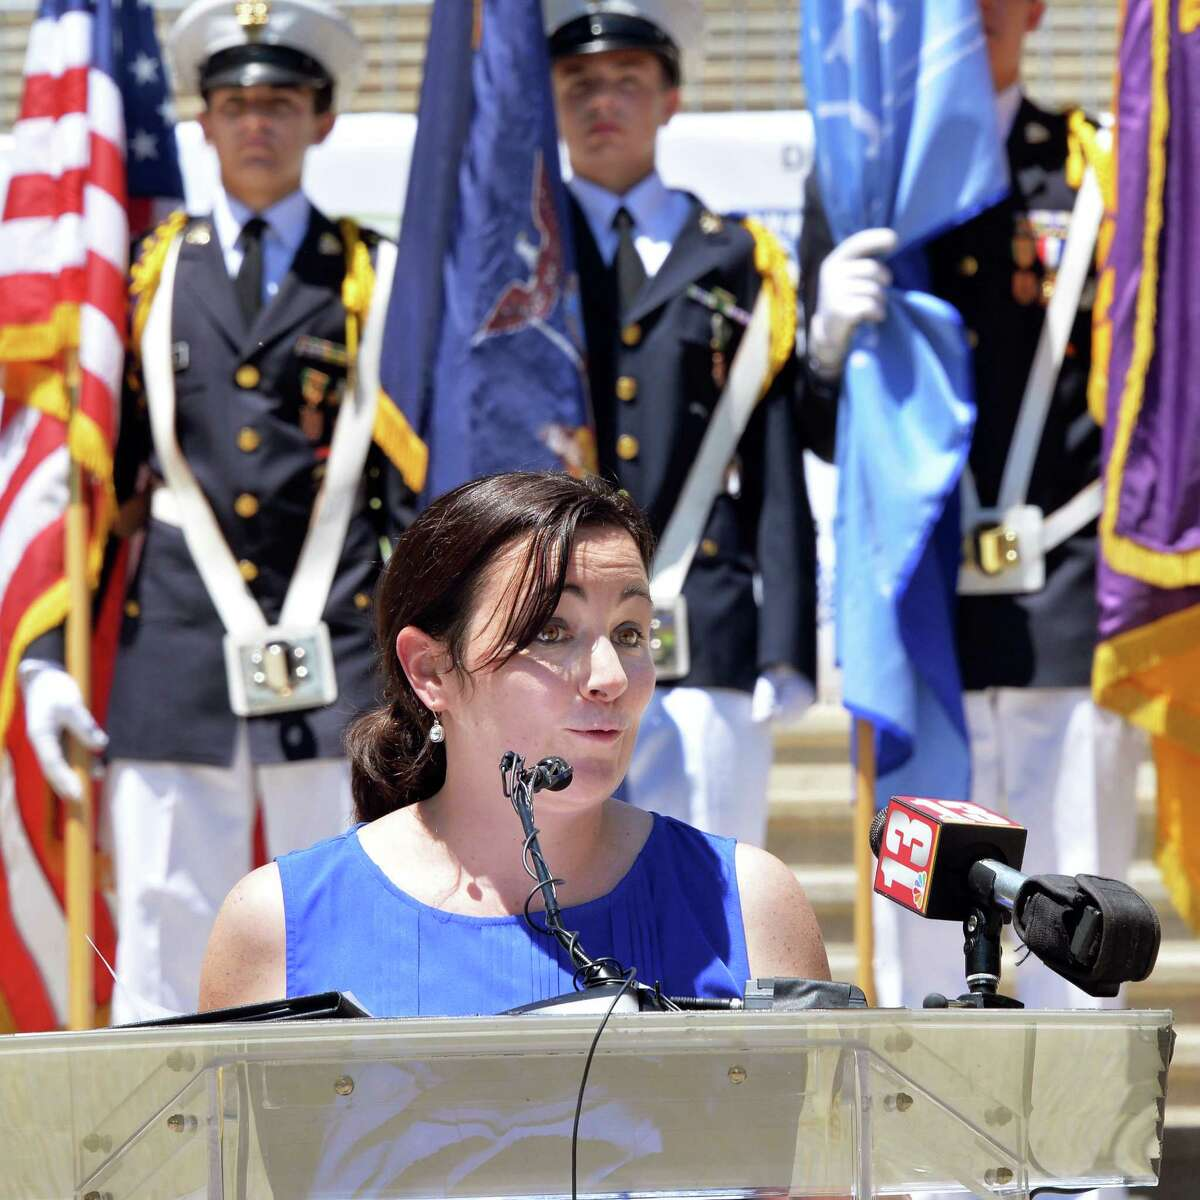 Acting Commissioner of the NYS Office for People With Developmental Disabilities Kerry Delaney speaks on the Capitol steps during a ceremony commemorating the NYSARC's 65 years of service to the disabled Friday, July 11, 2014, in Albany, N.Y. (John Carl D'Annibale / Times Union)